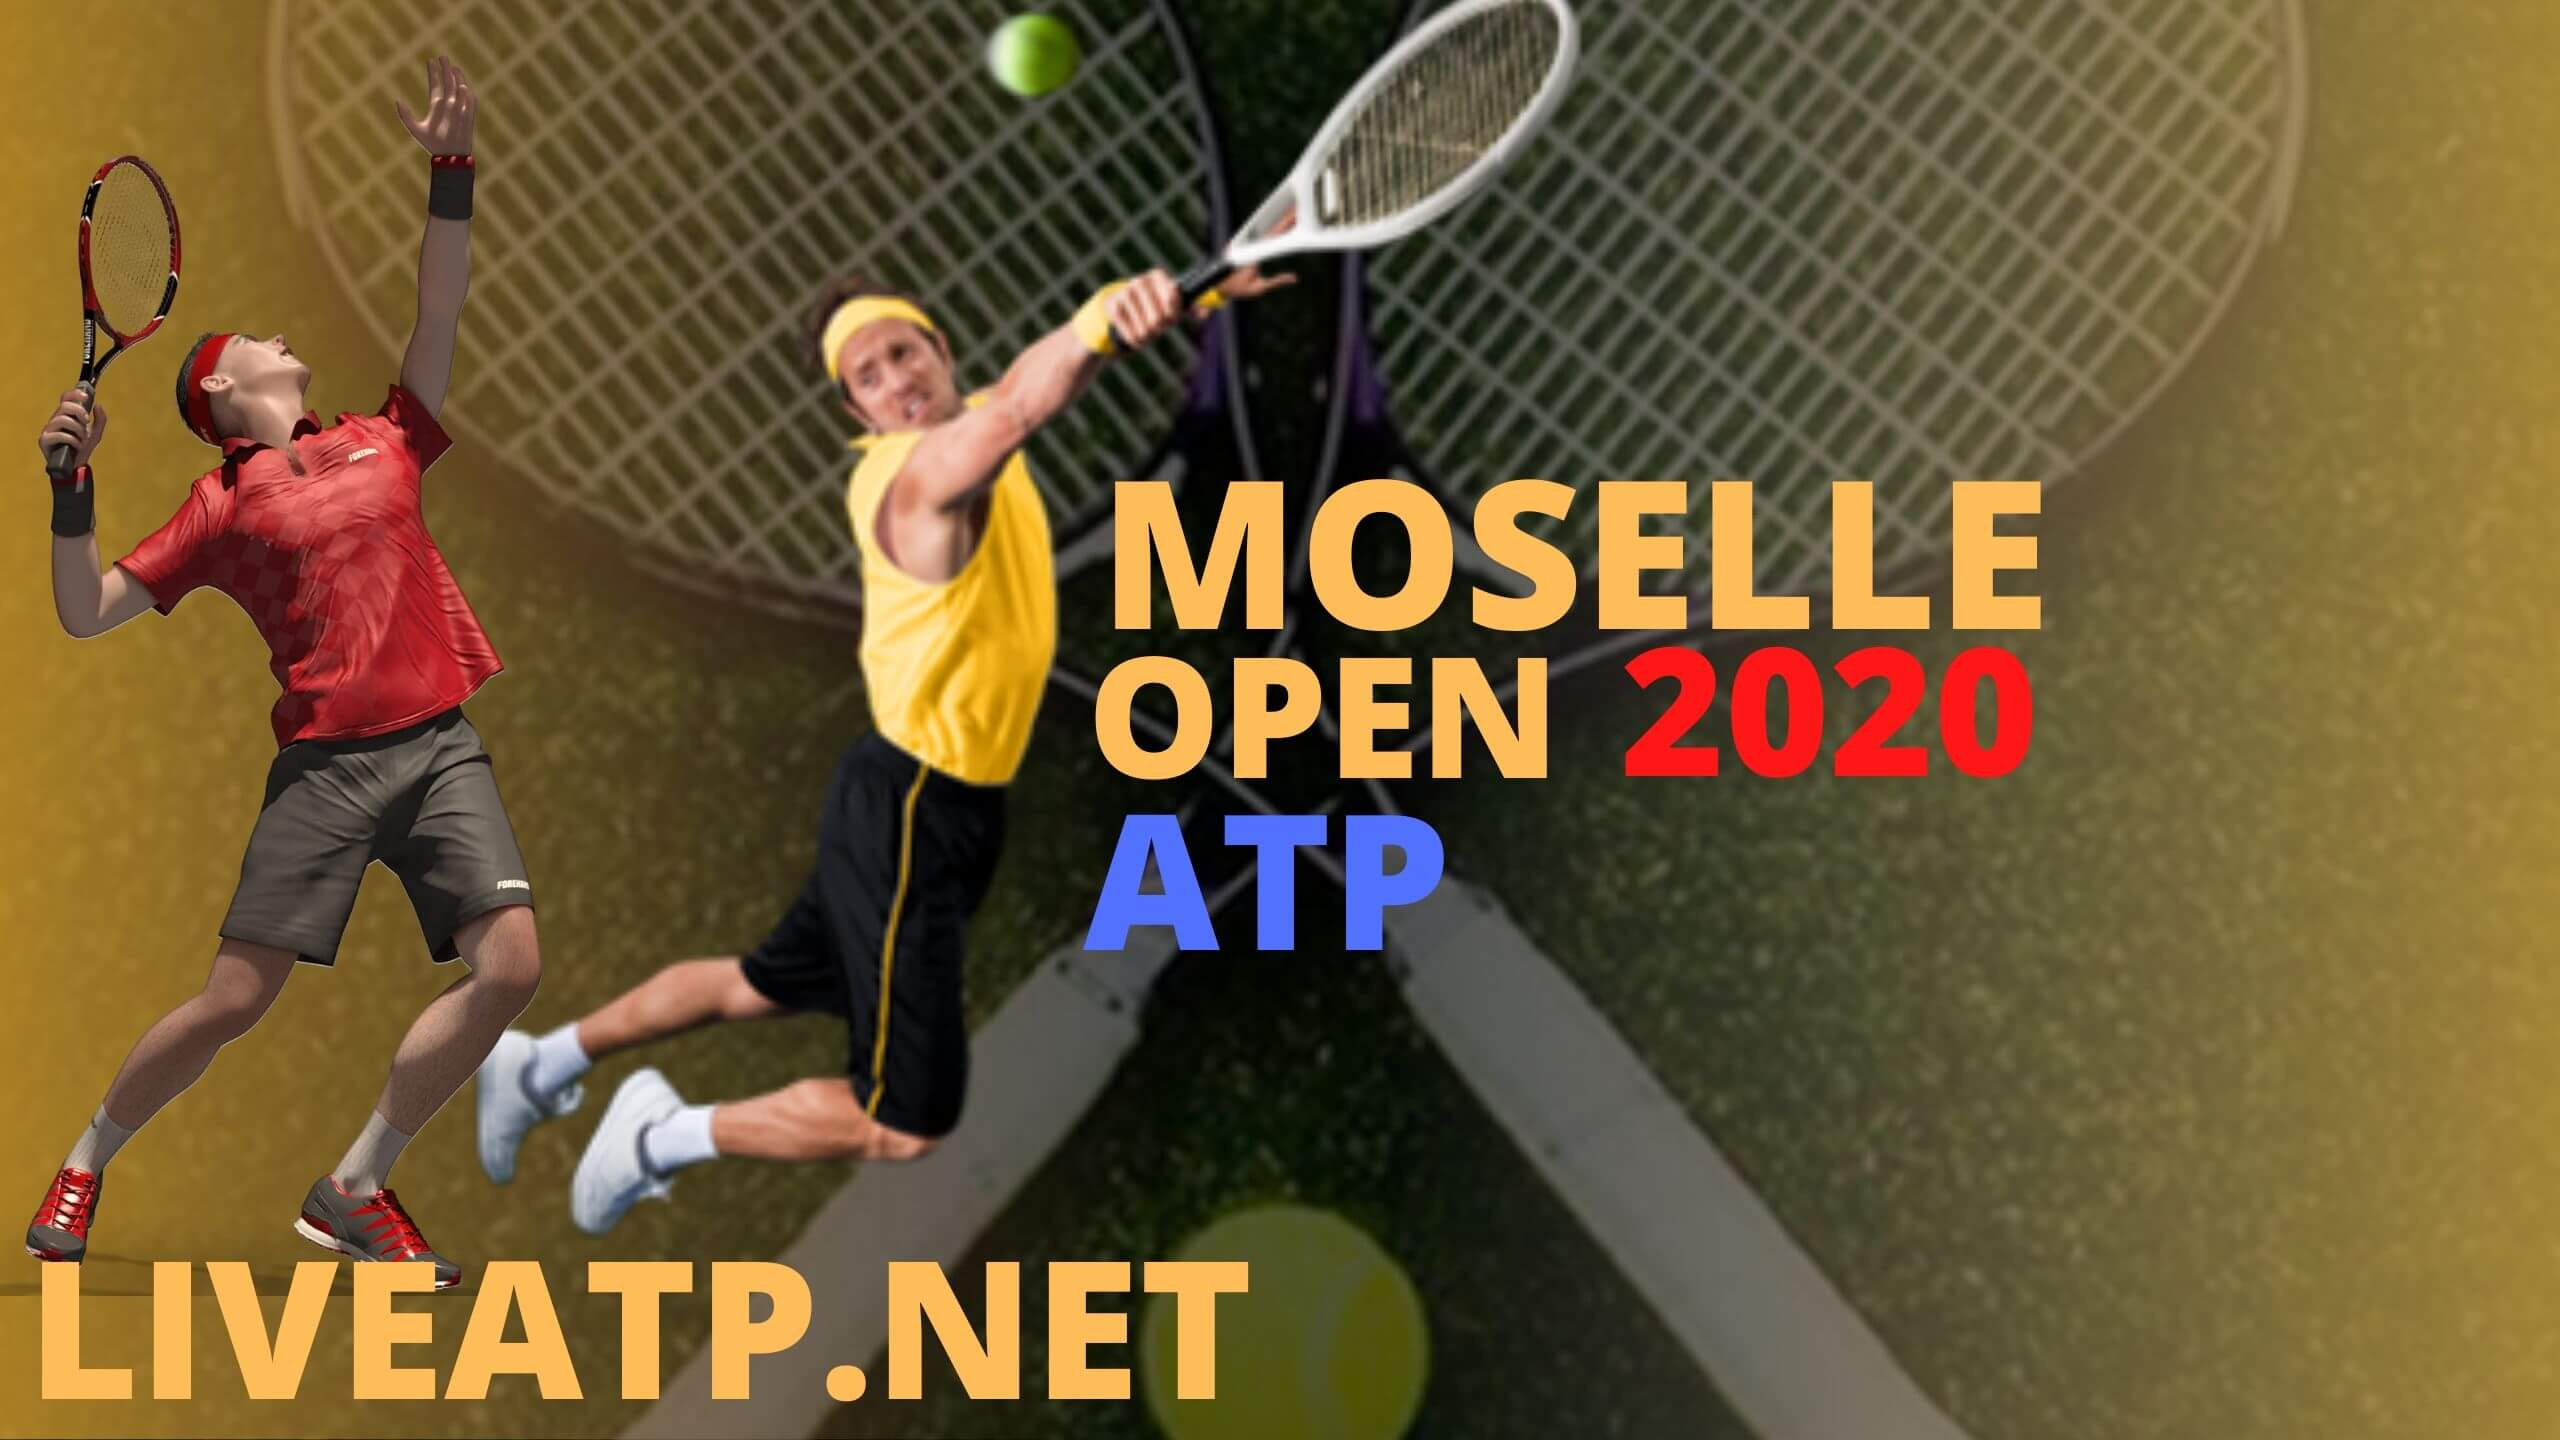 Moselle Open Live Stream 2020 | Day 4